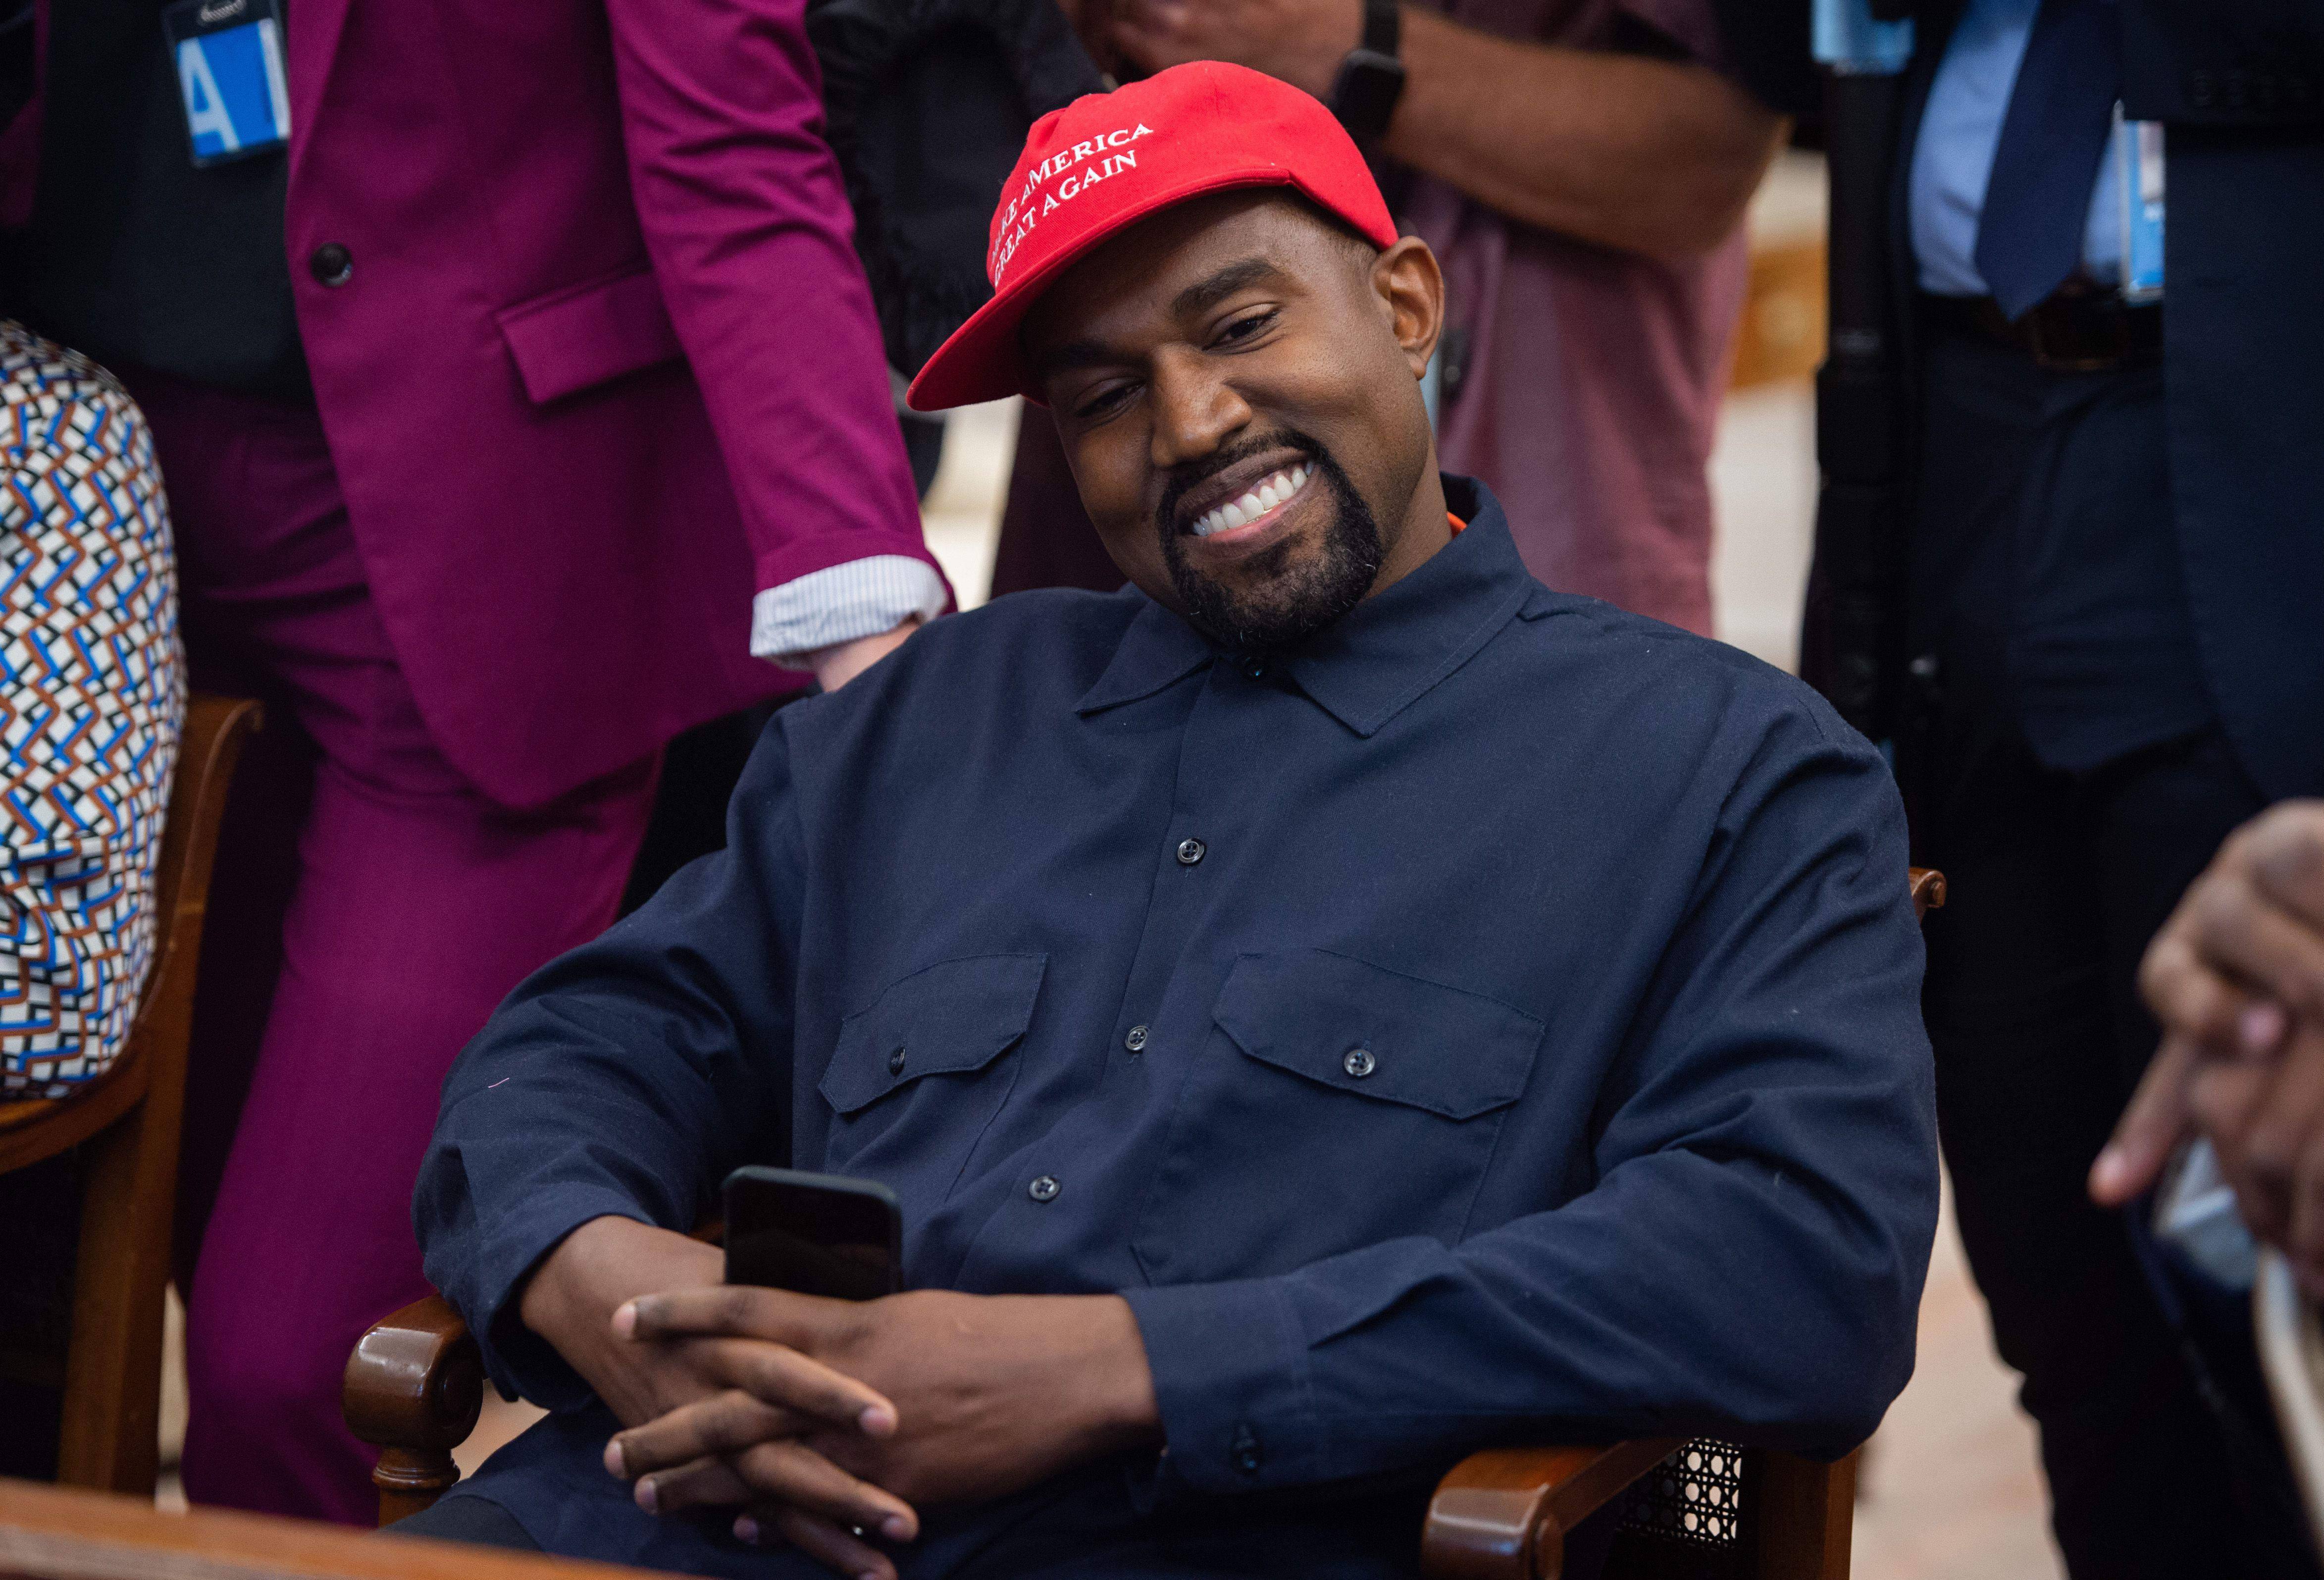 Kanye West in the Oval Office with his phone in his hands.